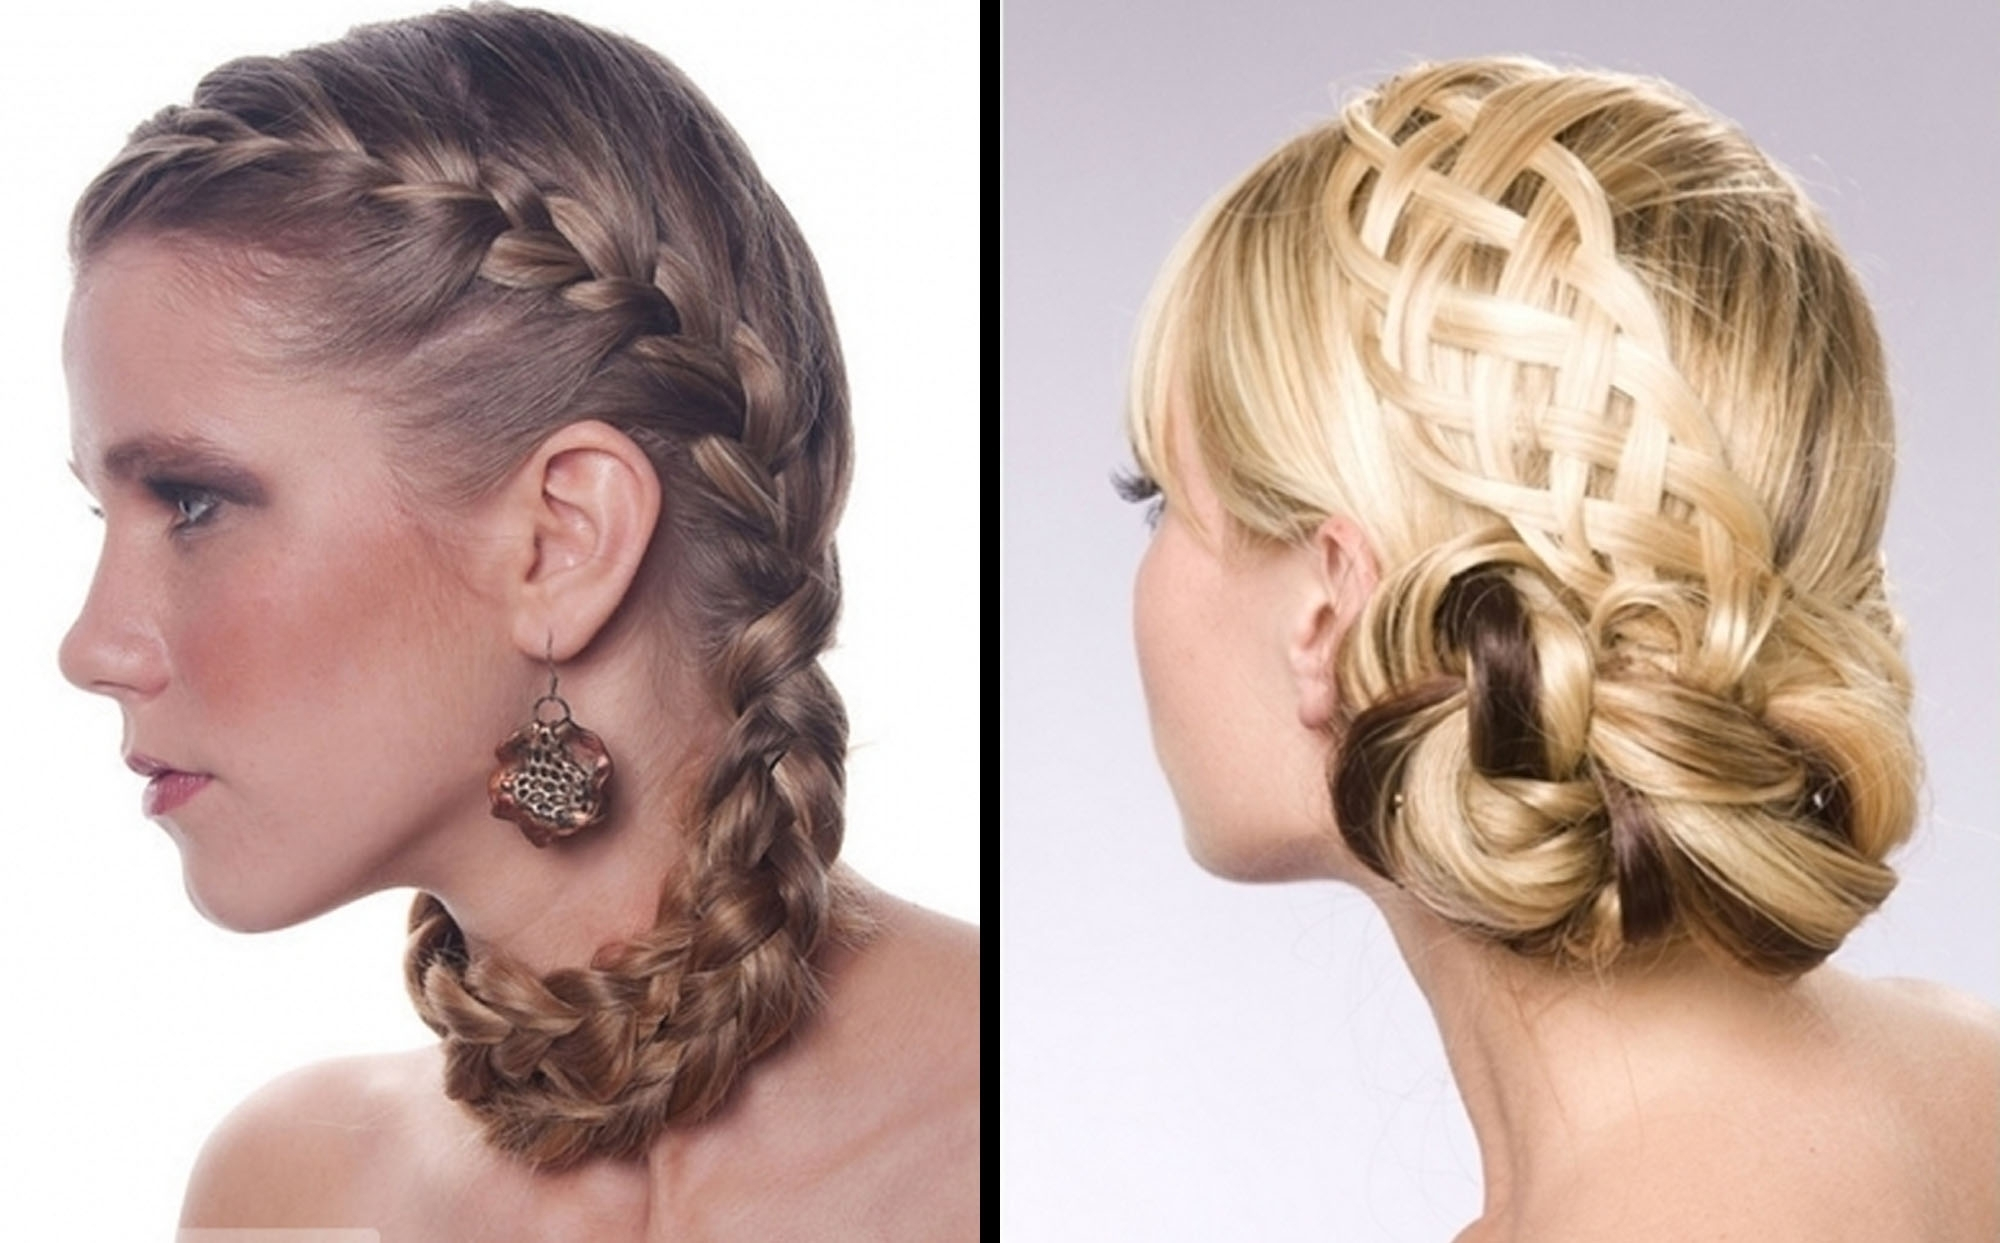 Hair Braided Updo Hairstyles Salon Formal | Medium Hair Styles Ideas With Updo Hairstyles For Thick Hair (View 8 of 15)